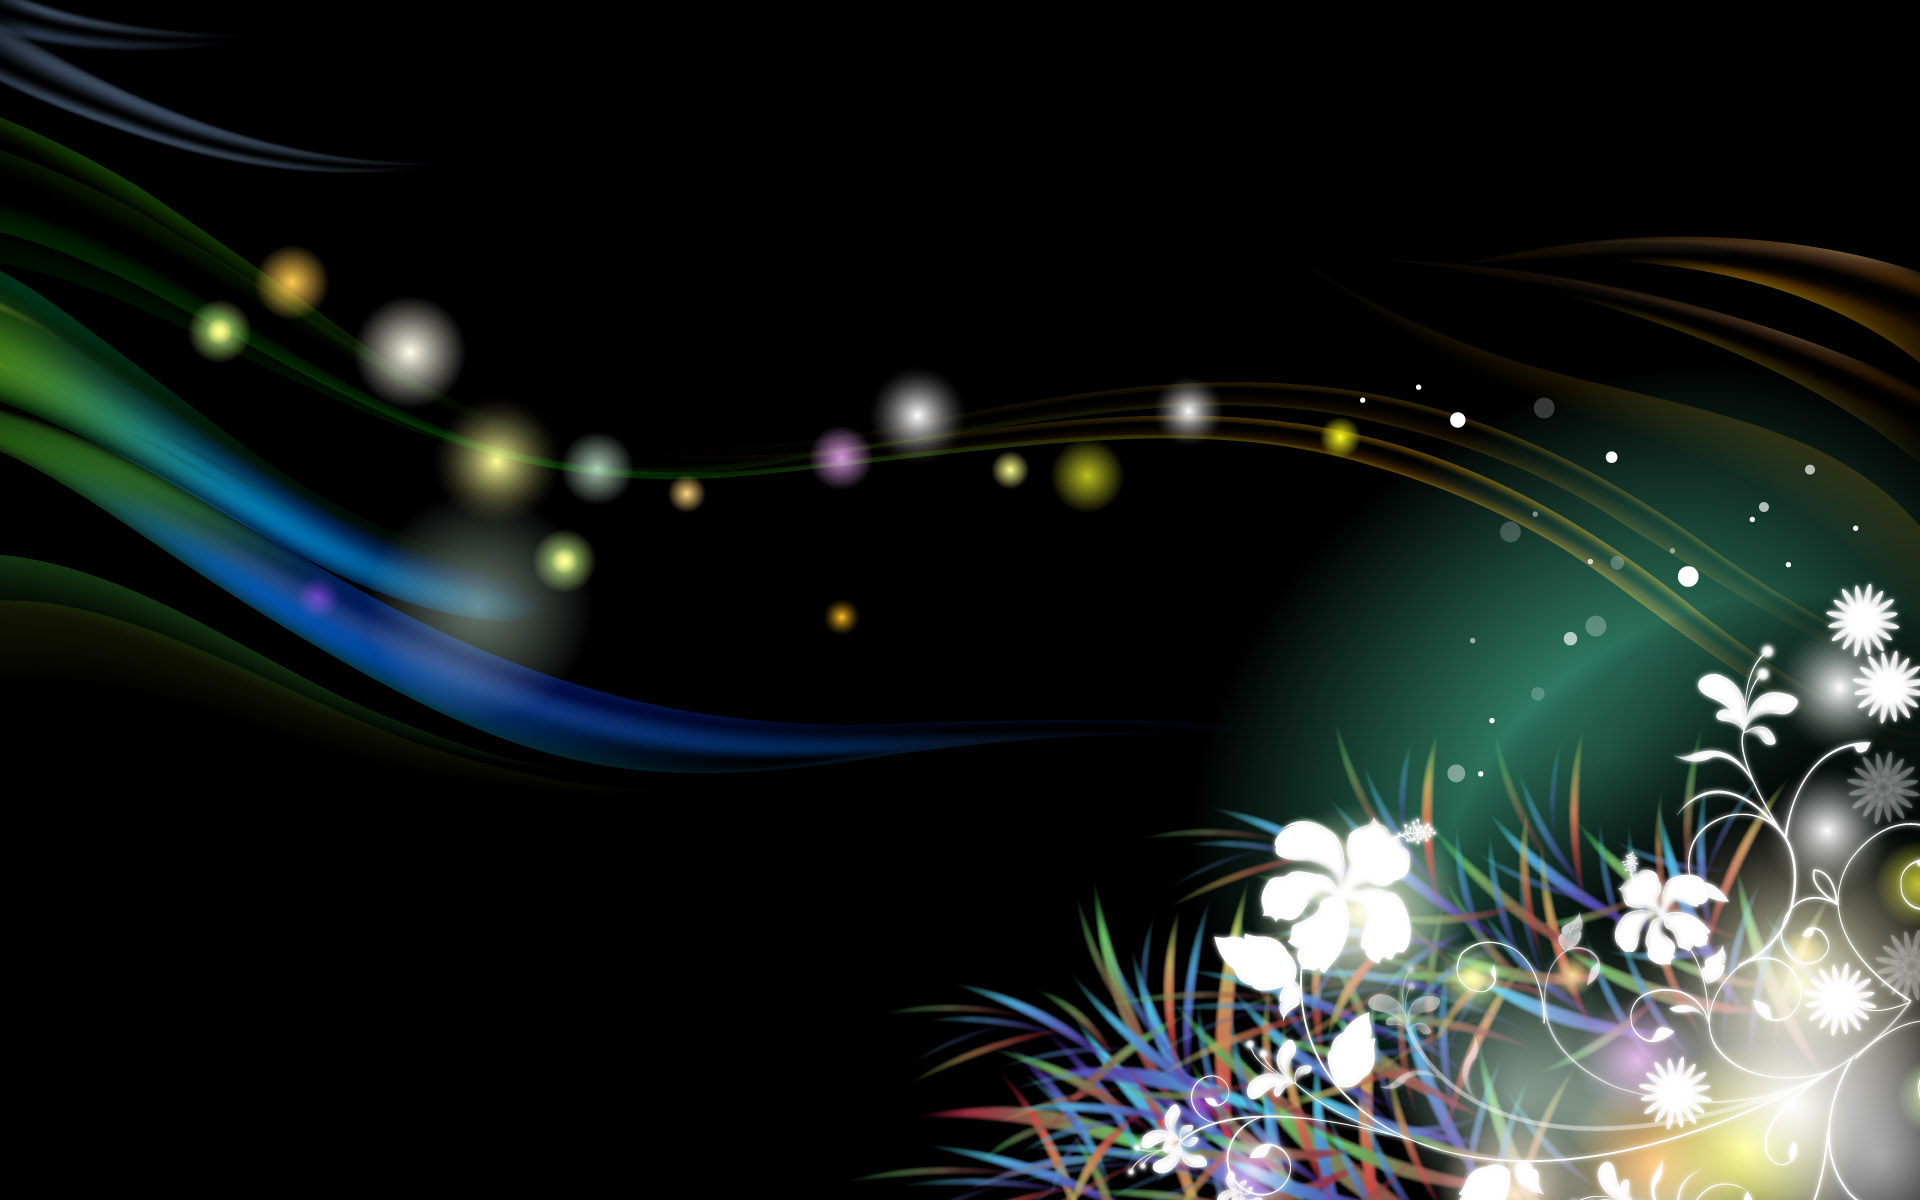 Abstract Wallpaper Widescreen 2993 Hd Wallpapers in Abstract 1920x1200